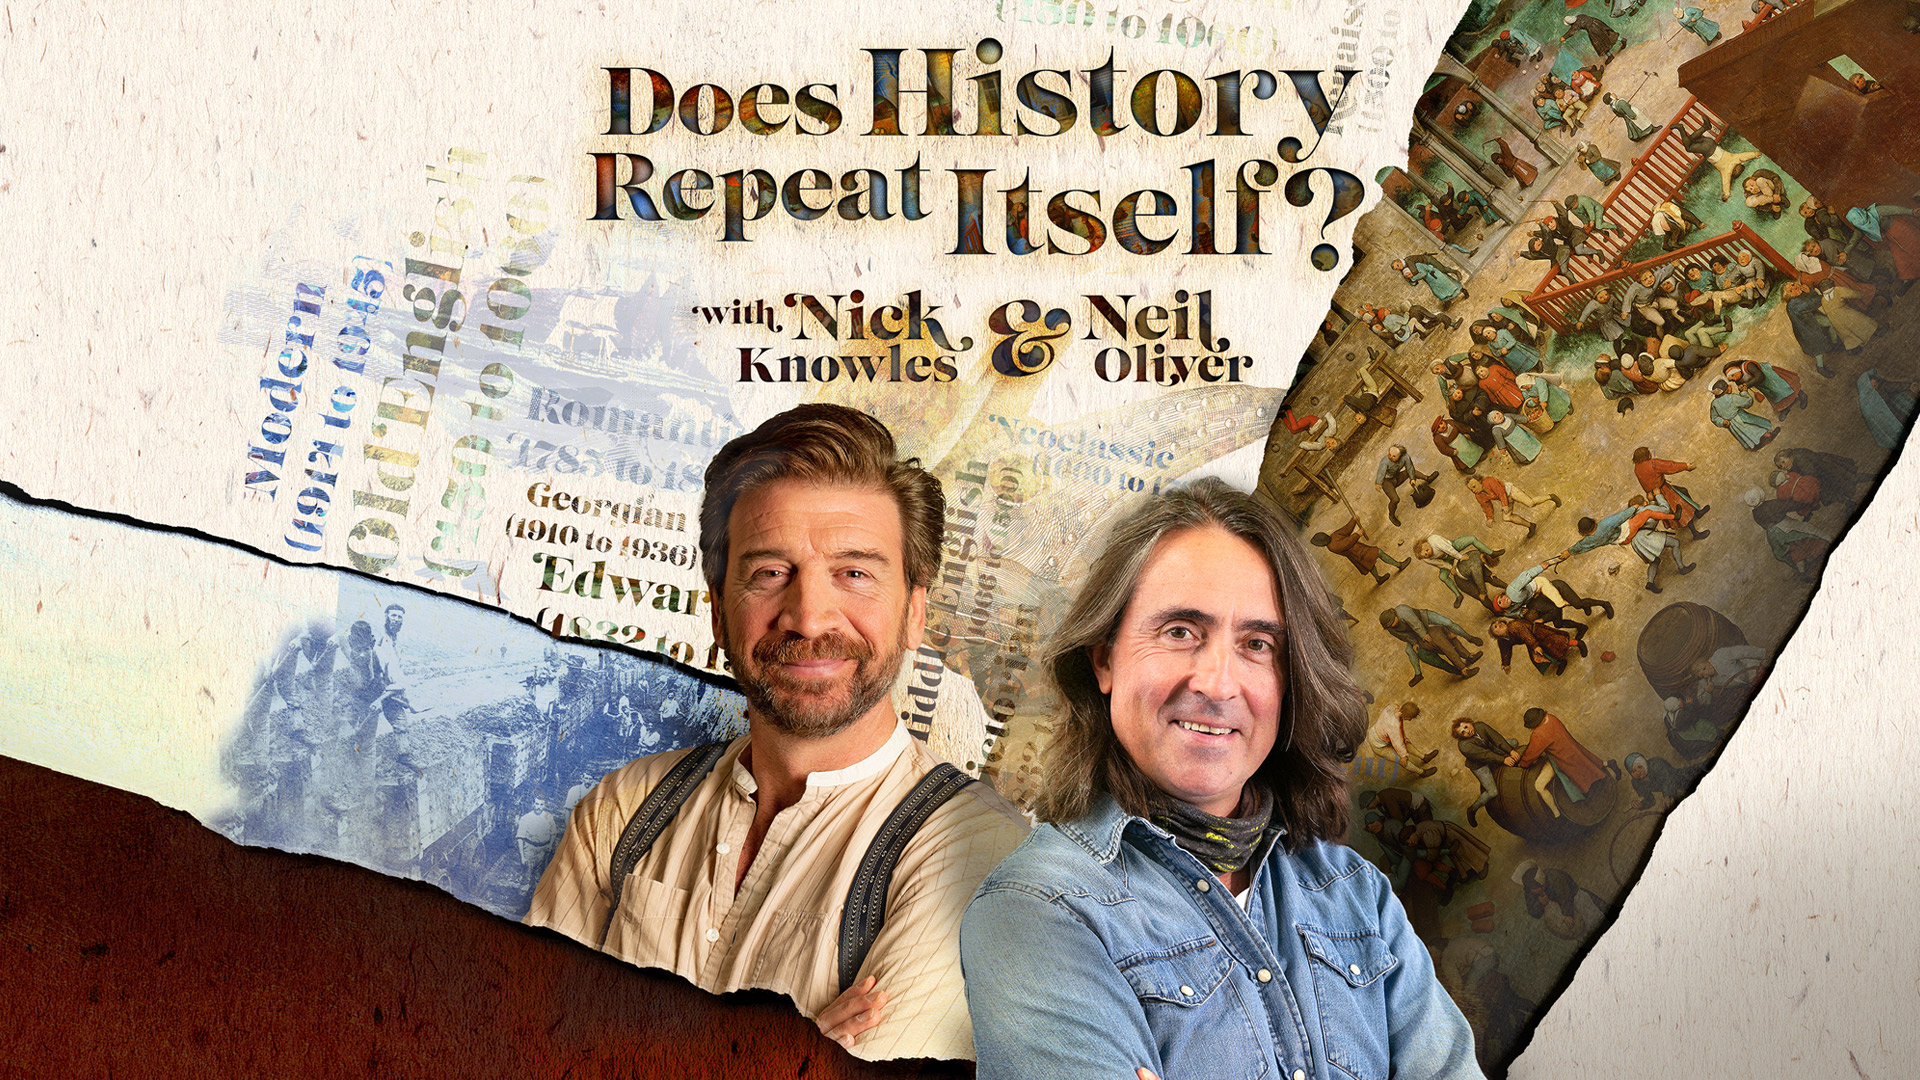 Does History Repeat Itself? with Nick Knowles & Neil Oliver - promotional image